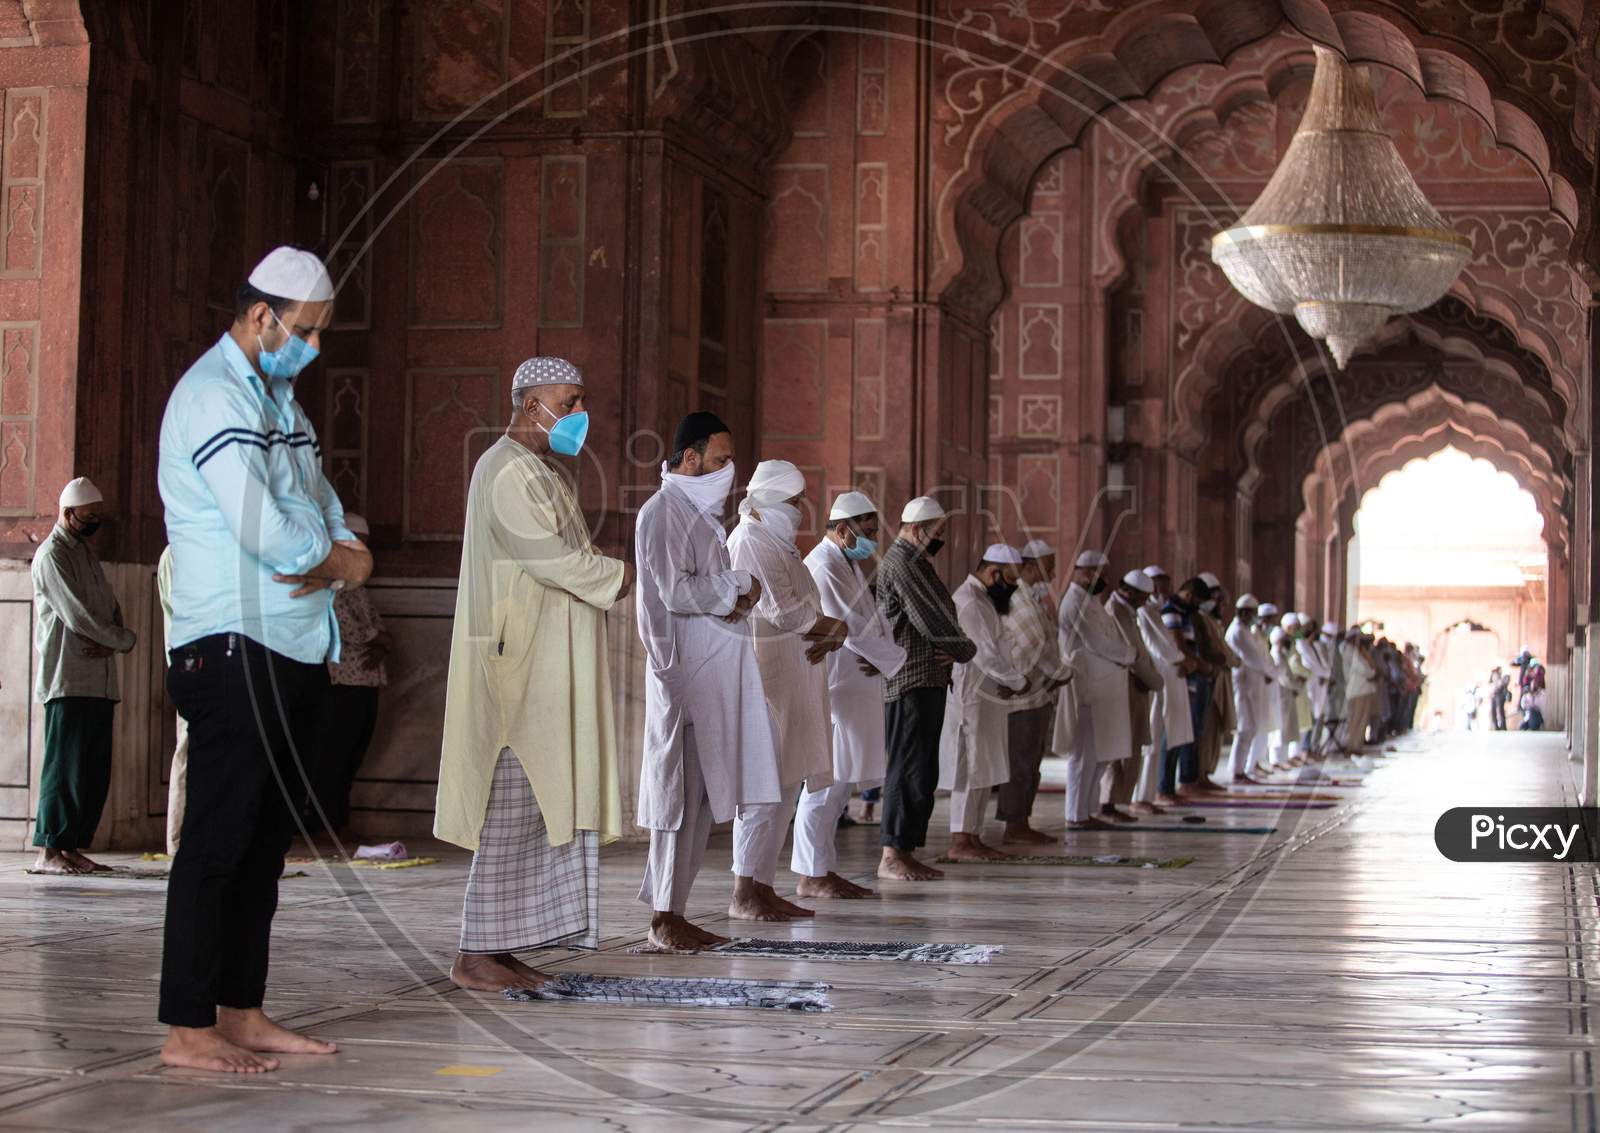 Muslims offers prayer Inside Jama Masjid After The Opening Of Most Of The Religious Places As India Eases Lockdown Restrictions That Were Imposed To Slow The Spread Of The Coronavirus Disease (Covid-19), In The Old Quarters Of Delhi, India, June 8, 2020.